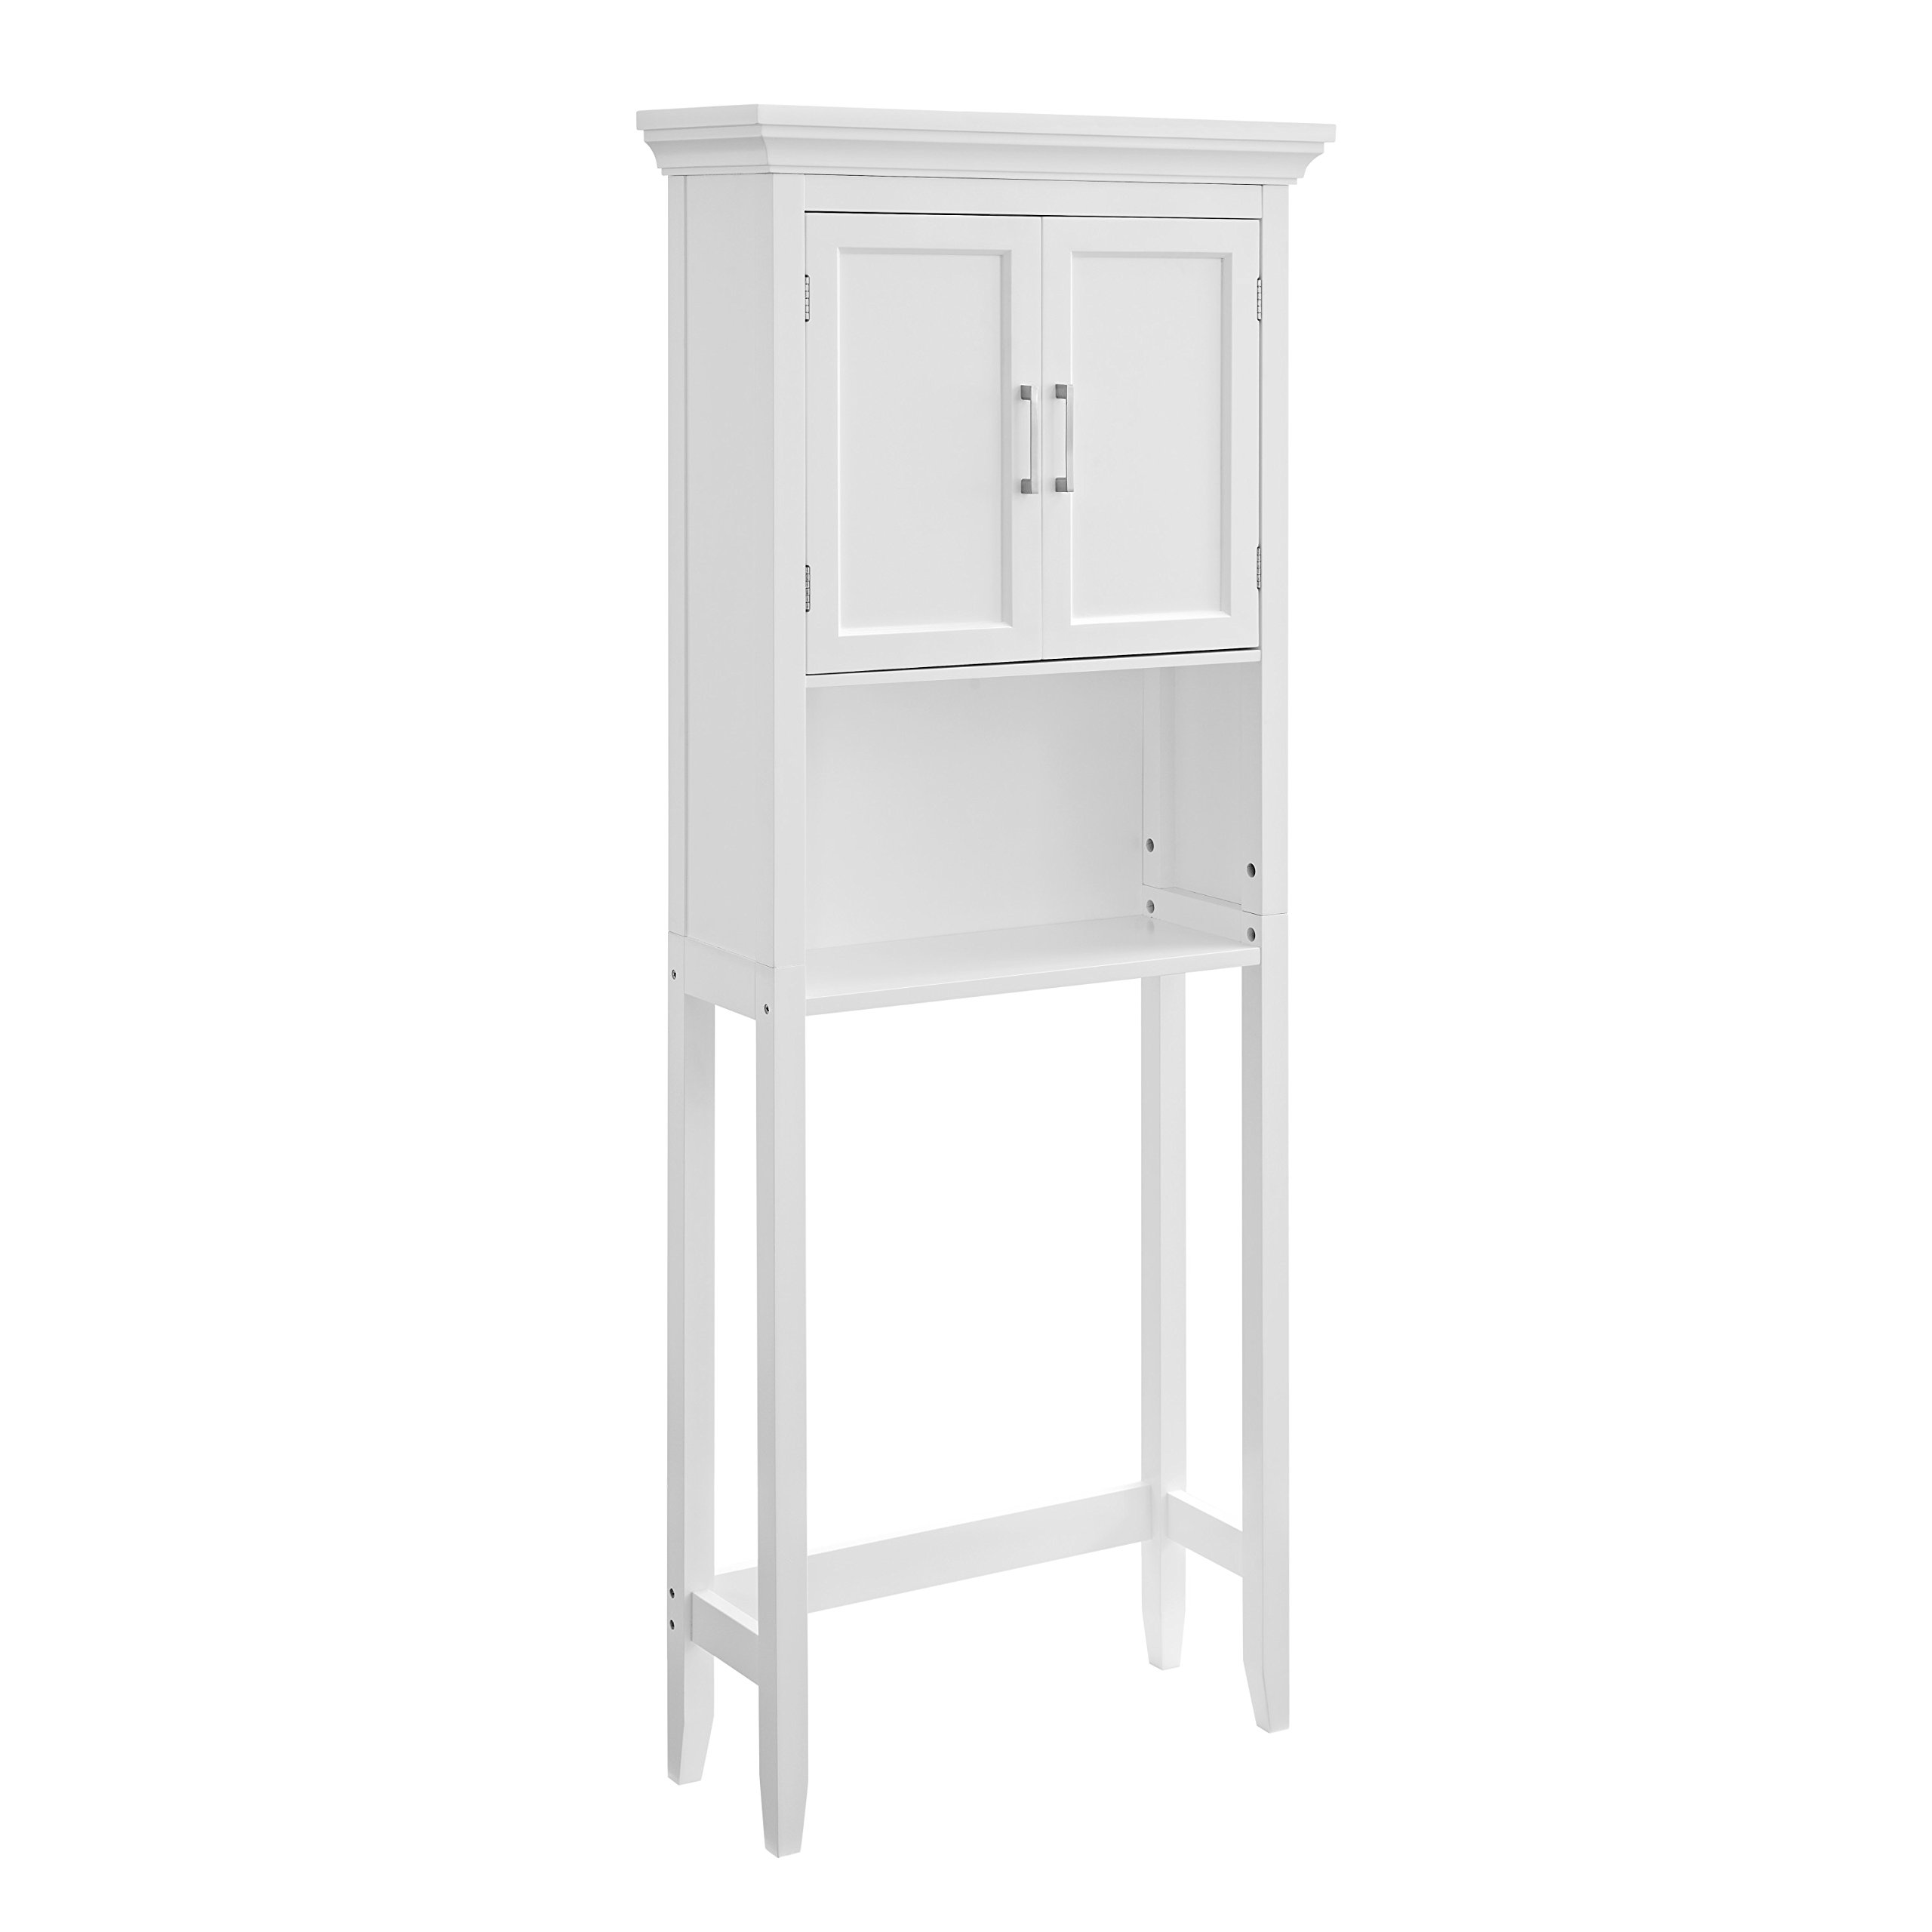 Simpli Home Avington Space Saver Cabinet, White